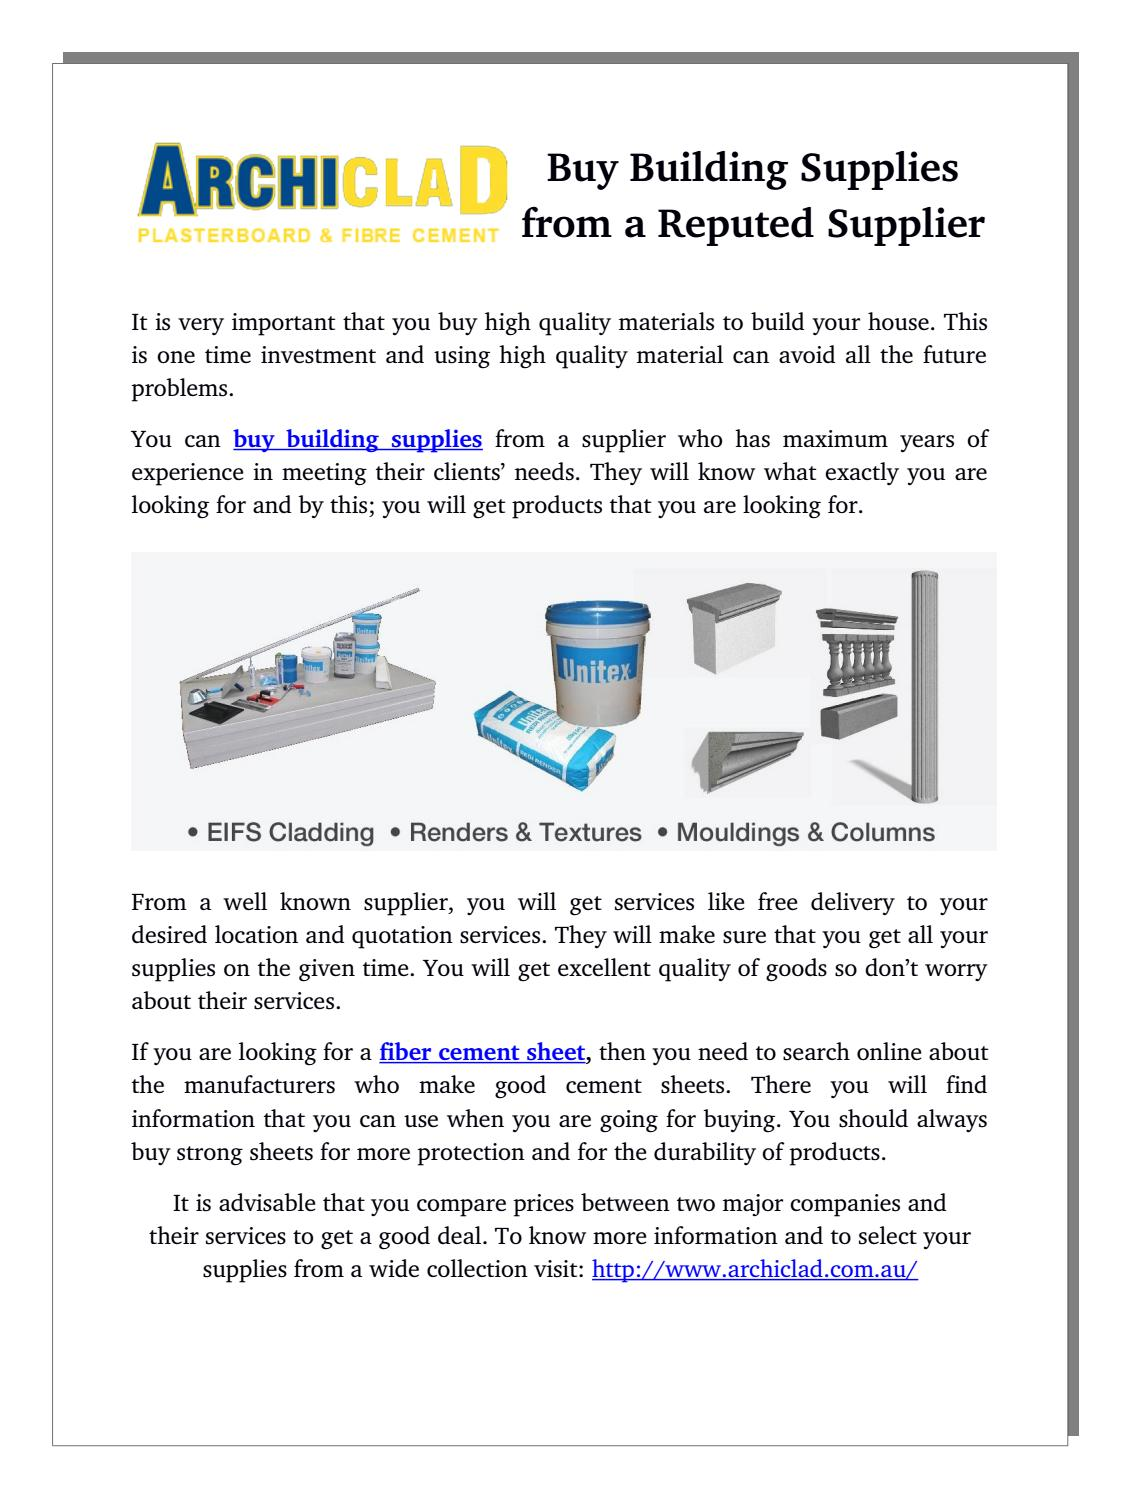 Buy building supplies from a reputed supplier by Building